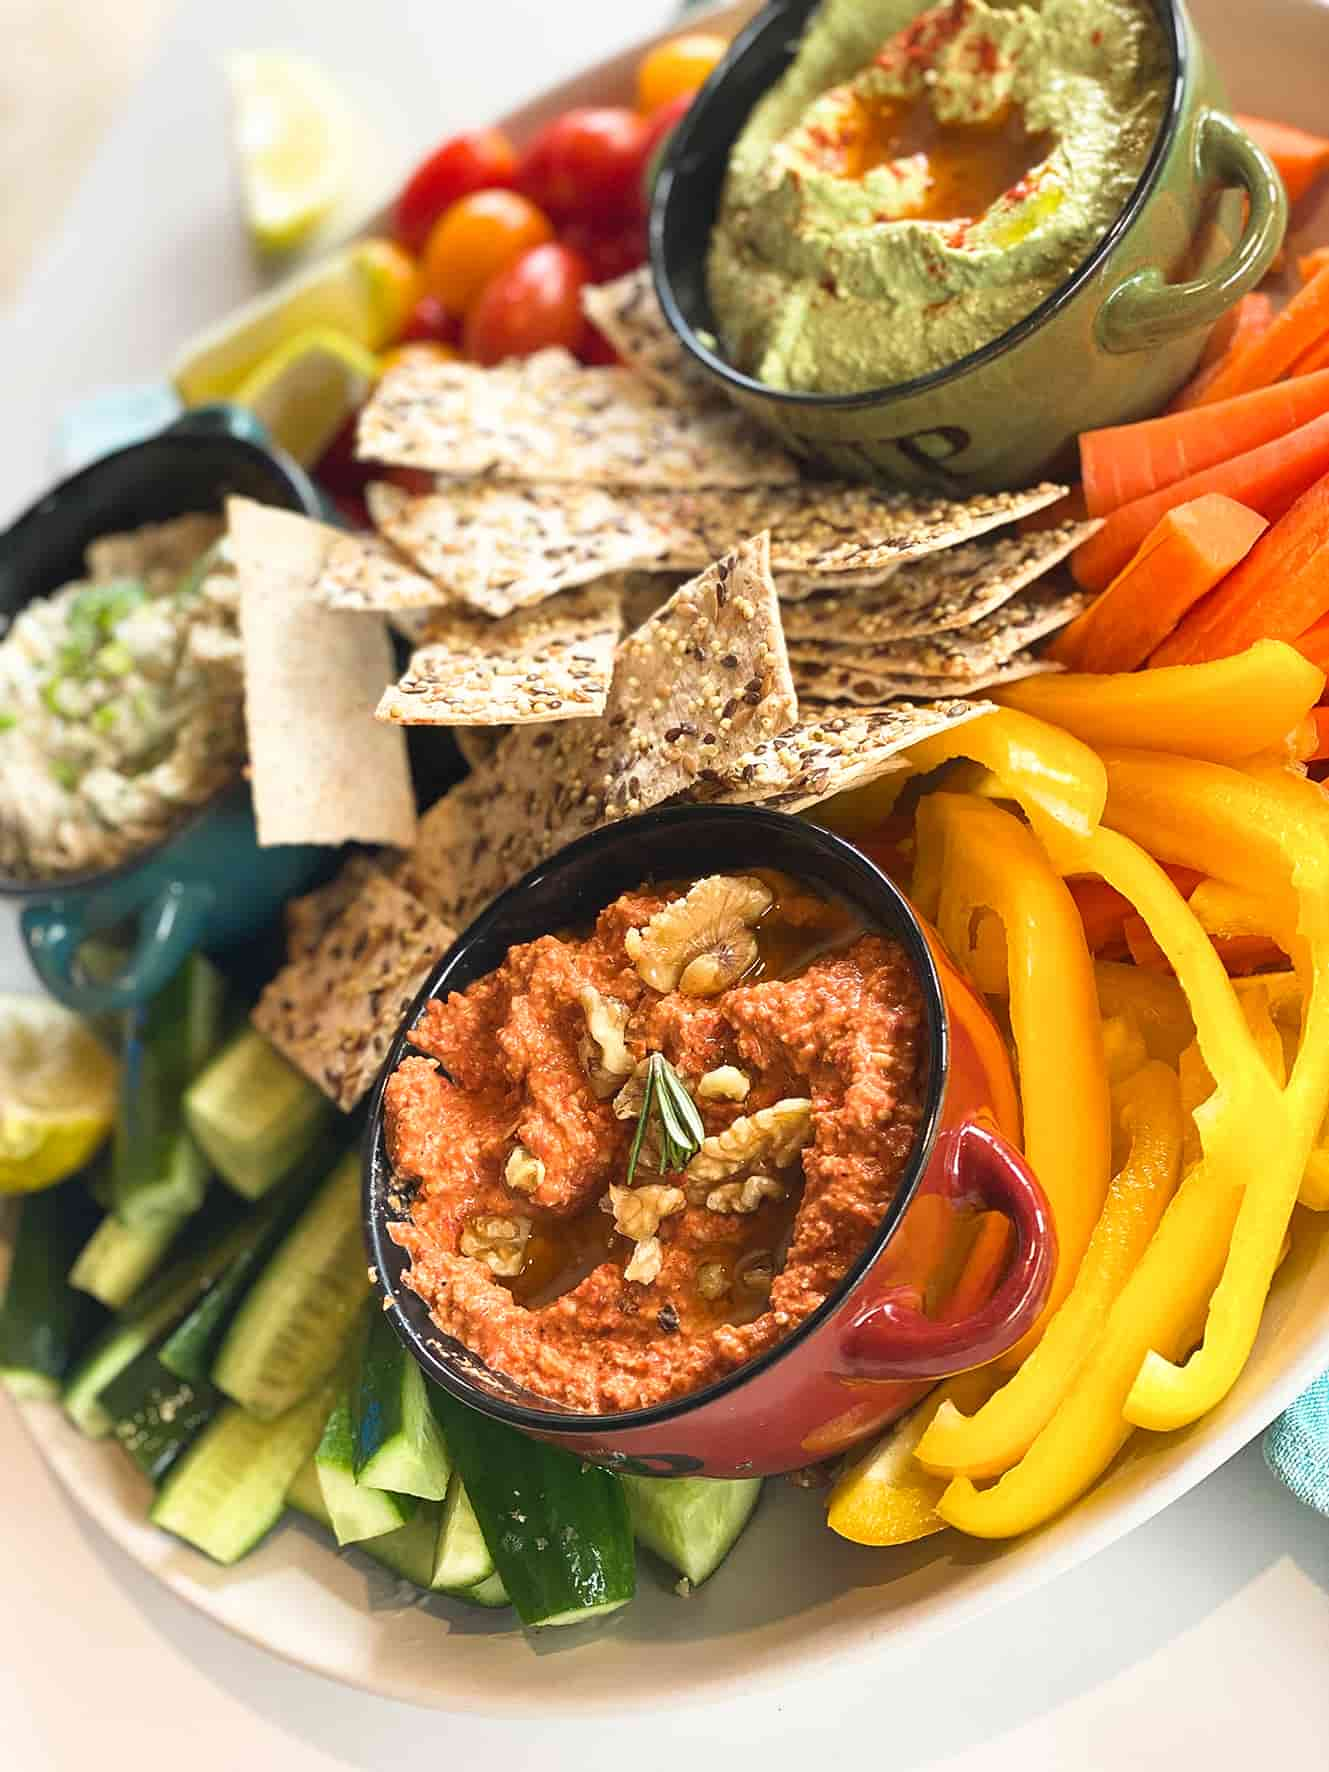 Ultimate-mediterranean-dips-platter2-recipes-starters-sides